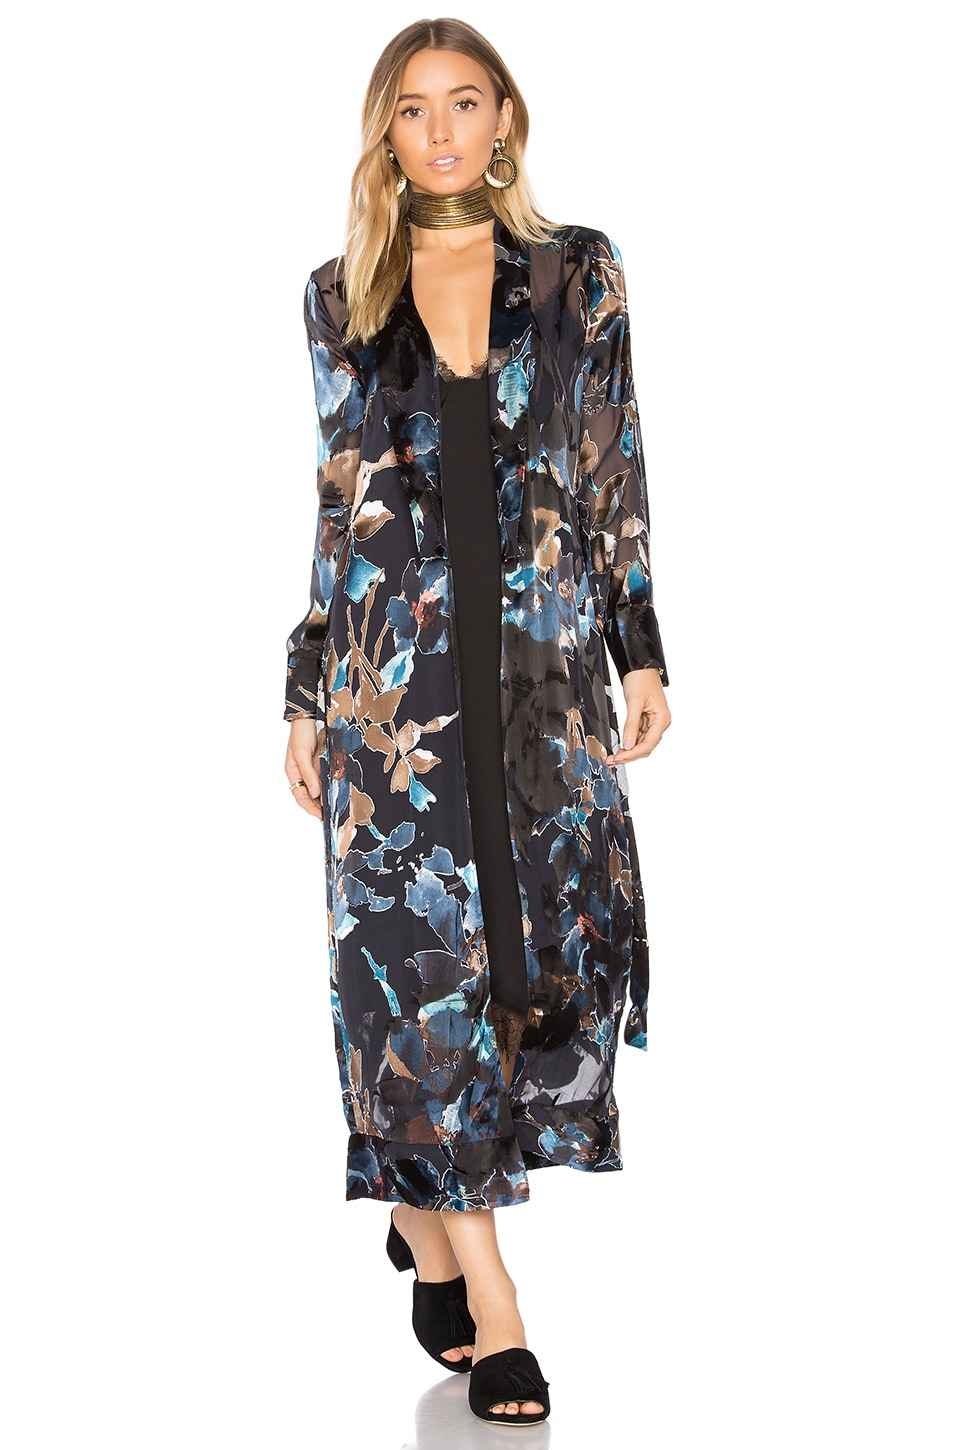 House of Harlow 1960 x REVOLVE Yoselin Maxi Bed Jacket in Painted Floral